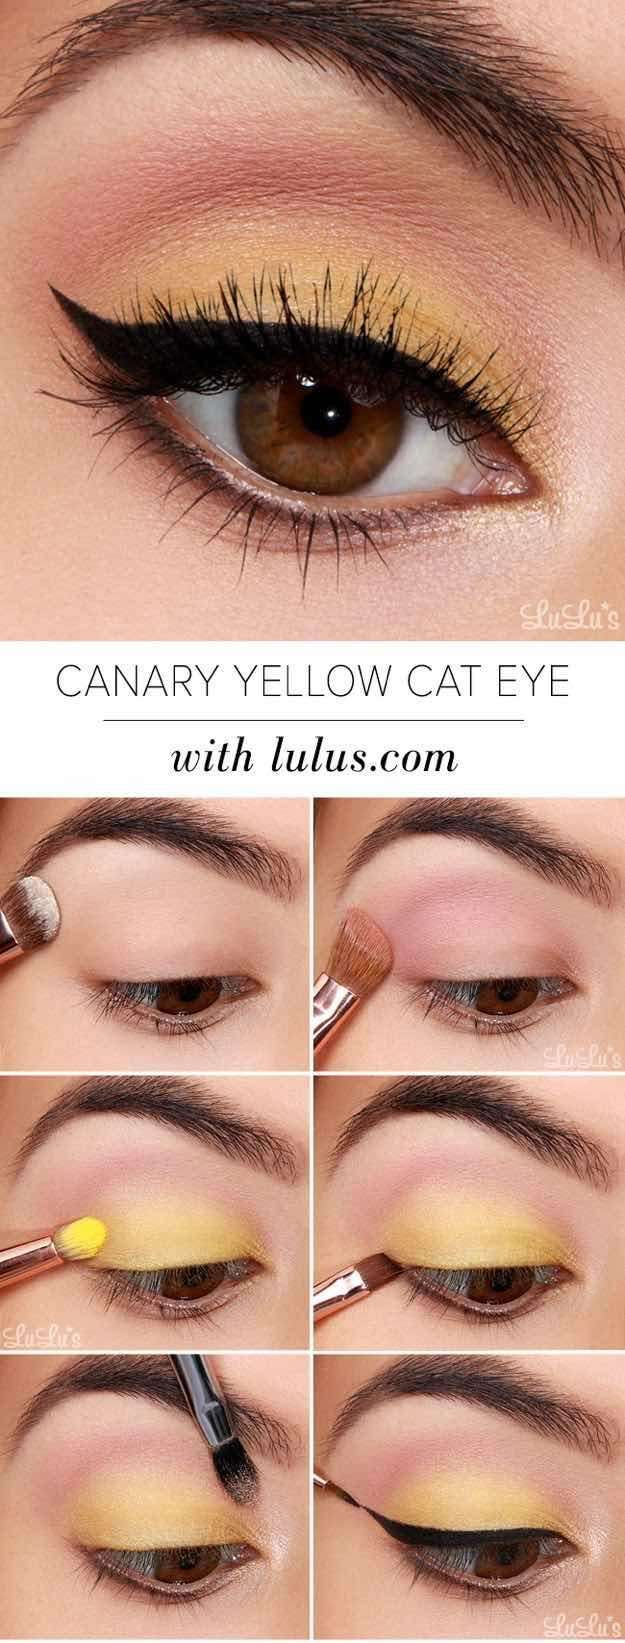 4. Yellow Eyeshadow - Cheerful Yellow Eyeshadow Tutorial for Beginners | Makeup Tutorial | 12 Colorful Eyeshadow Tutorials For Beginners